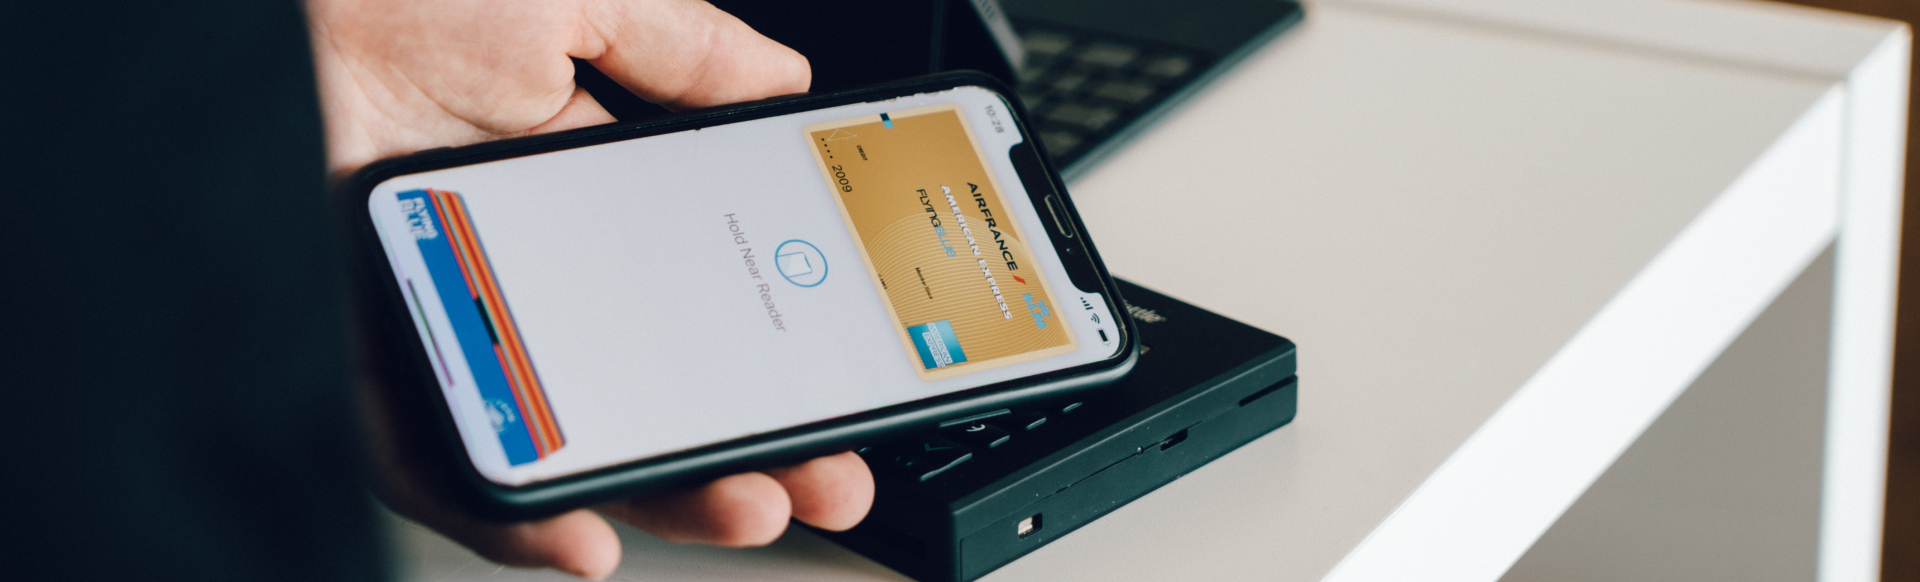 Person showing a boarding pass on their black Android phone.